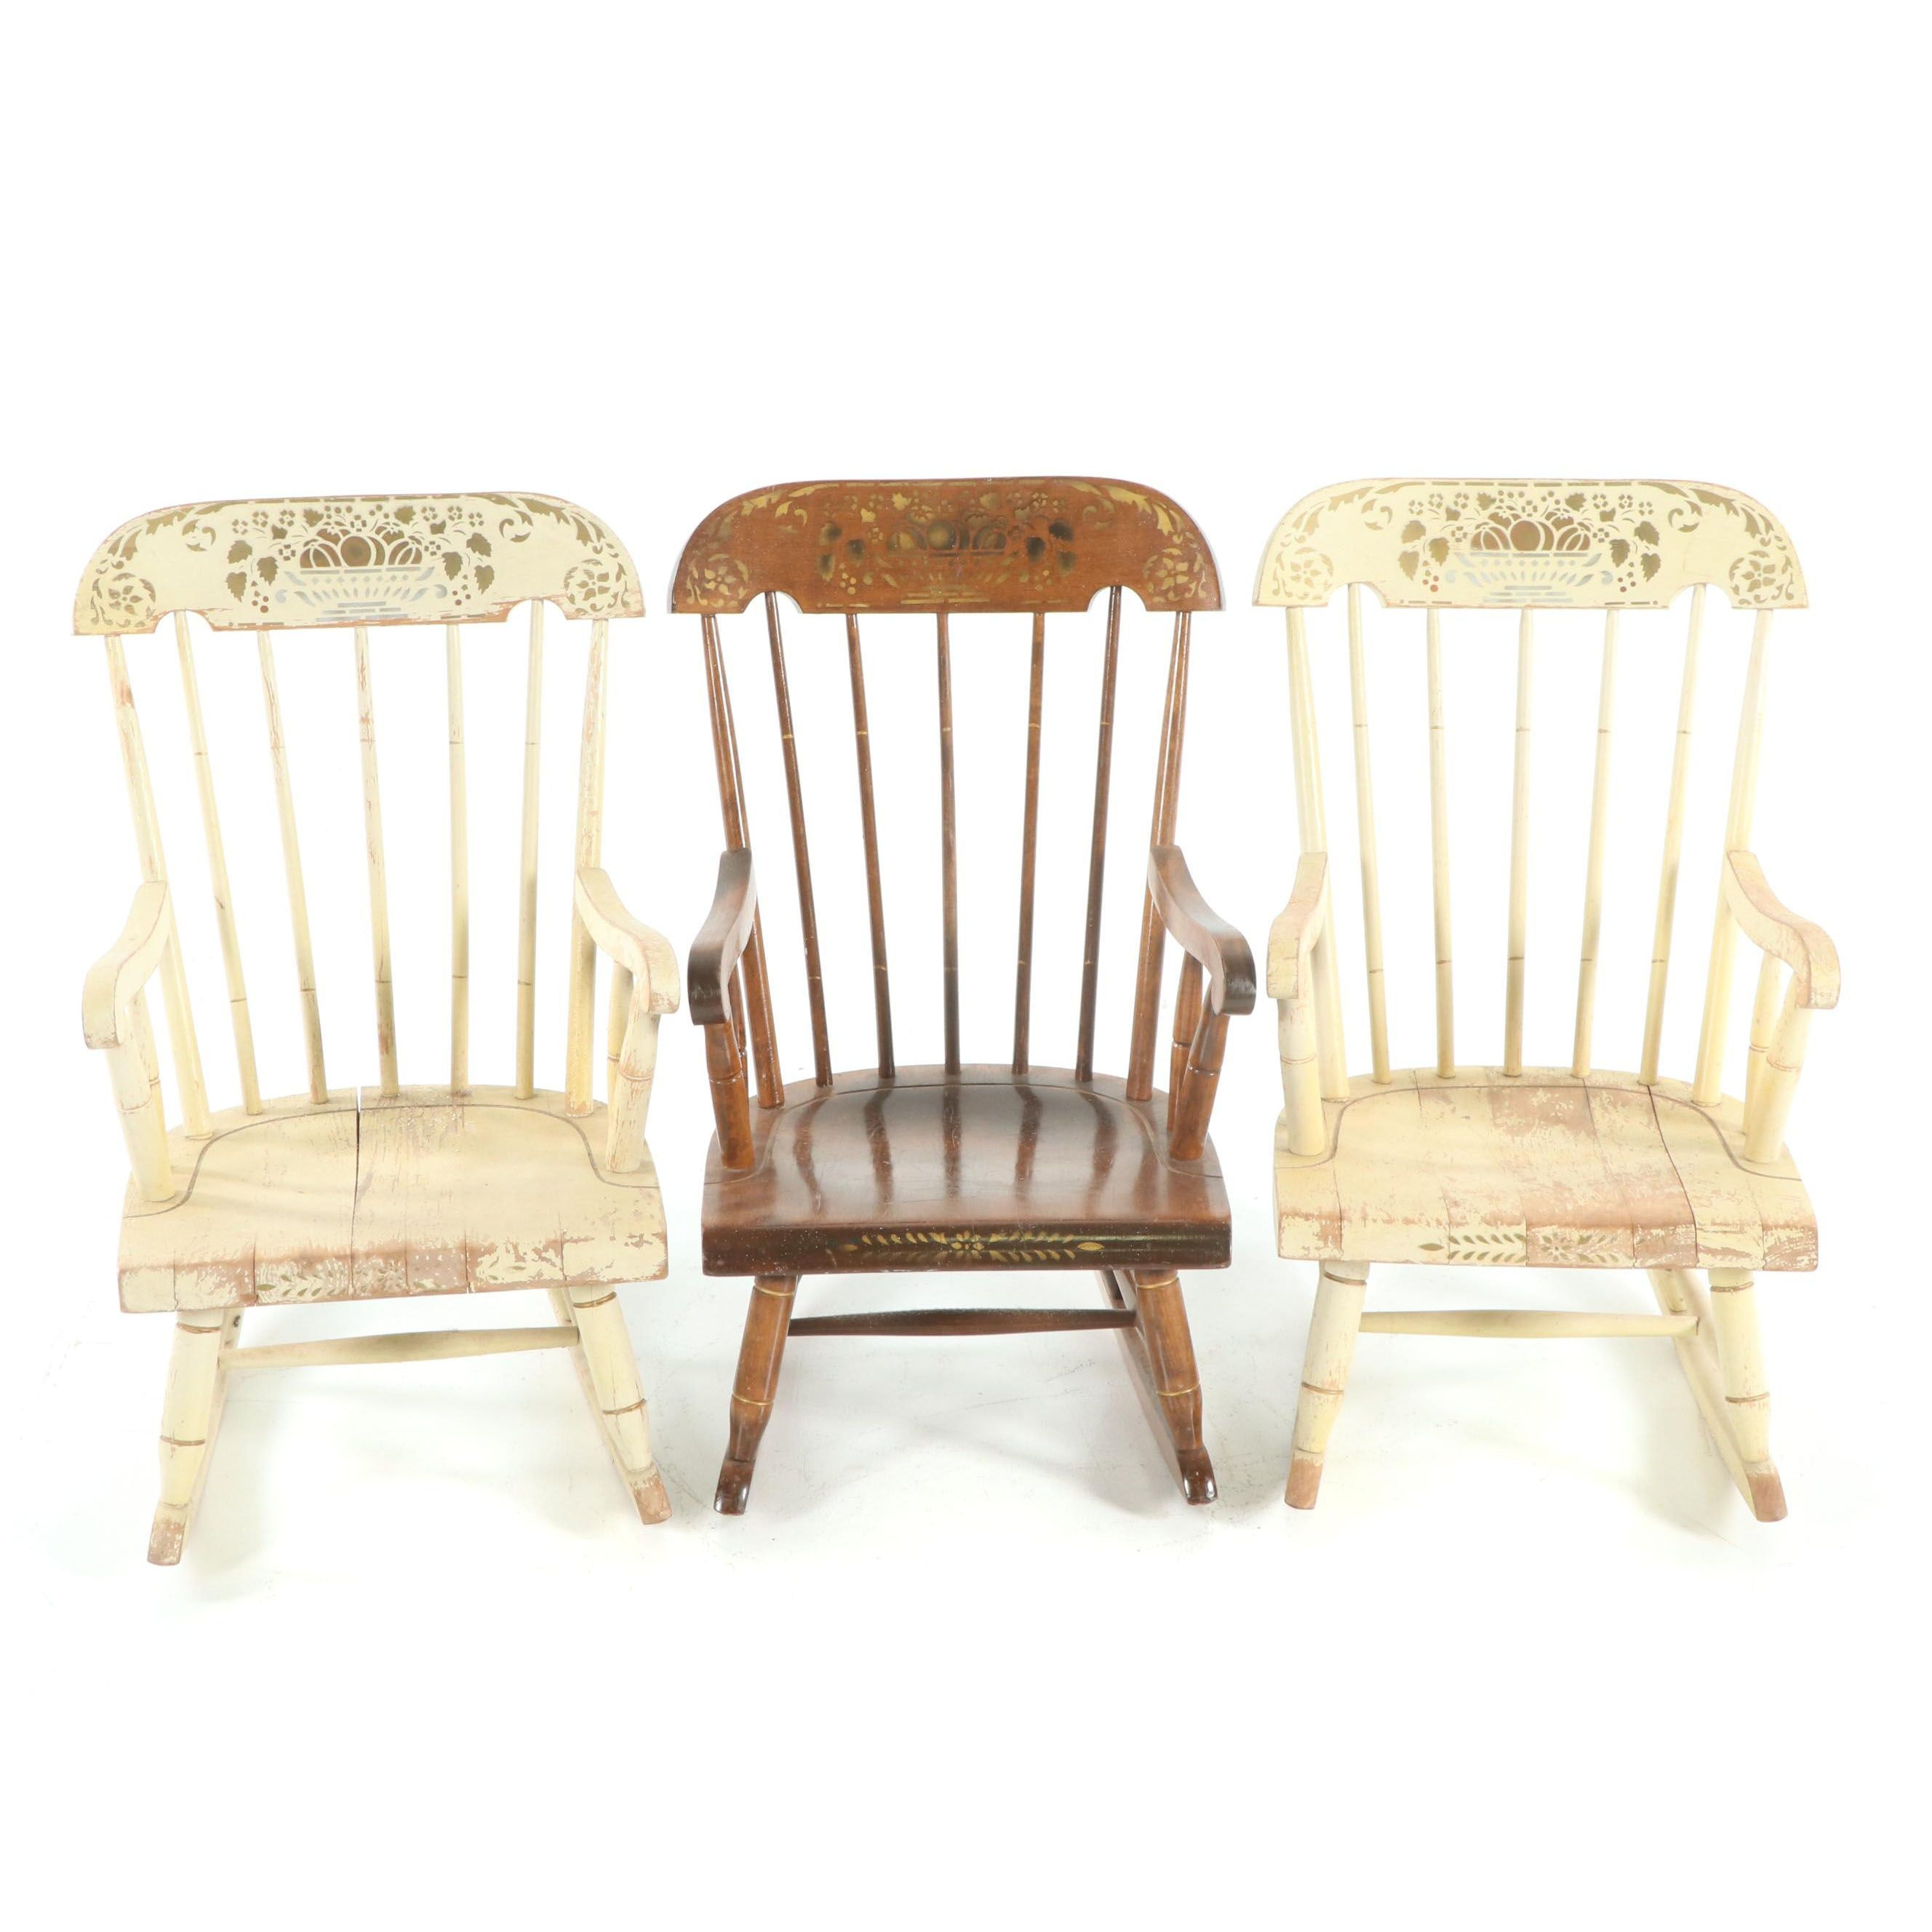 Painted and Stenciled Child's Rocking Chairs featuring Nichols & Stone, 20th C.